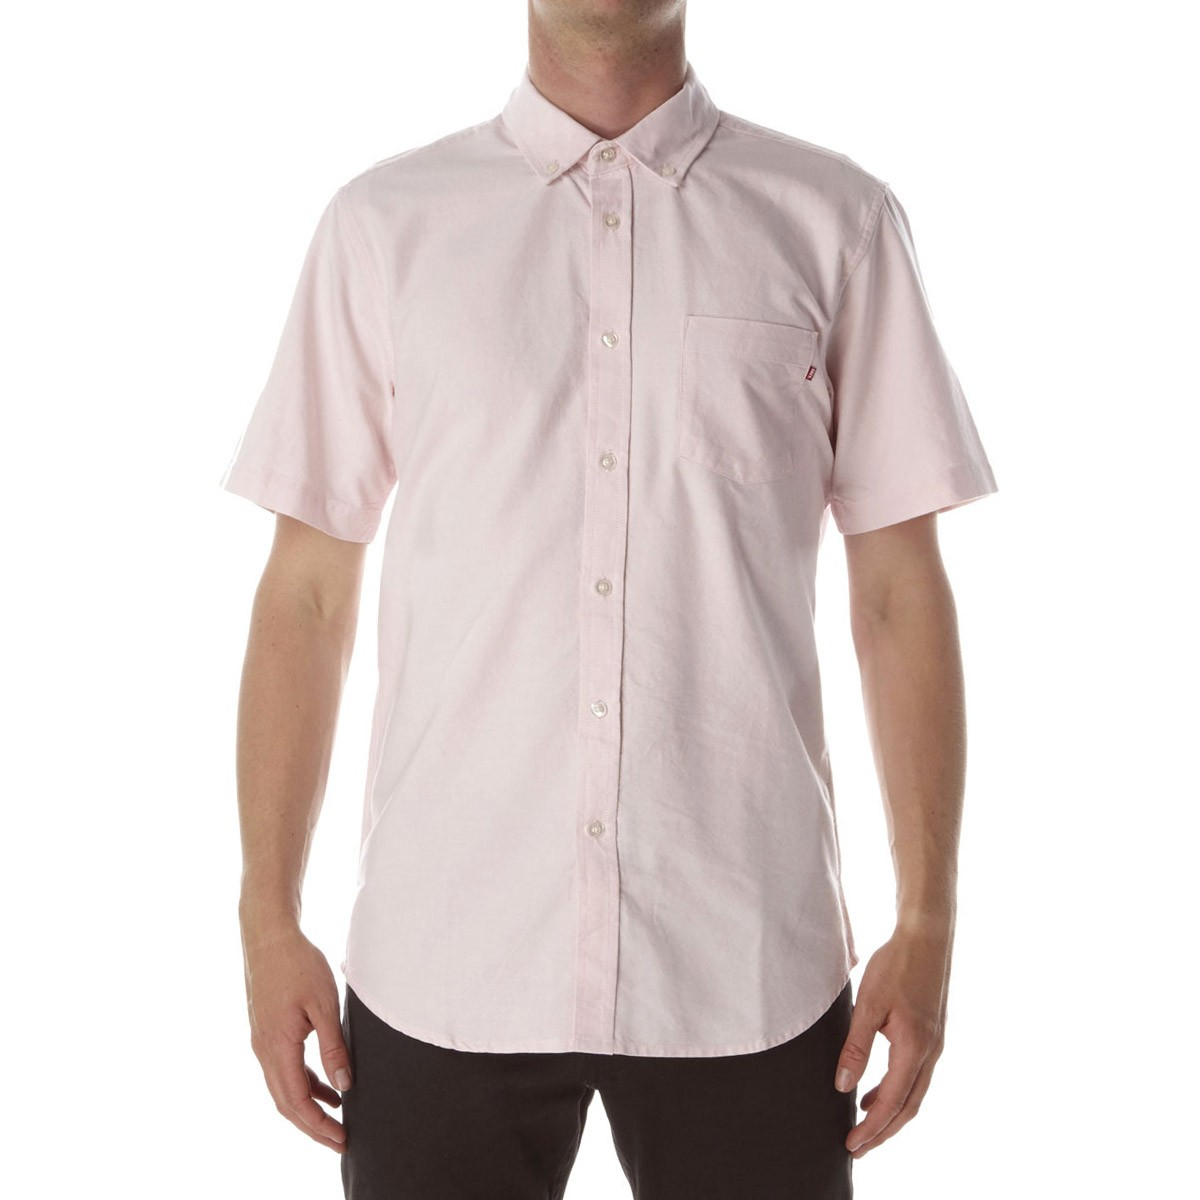 Obey Dissent Trait Woven Shirt - Pink